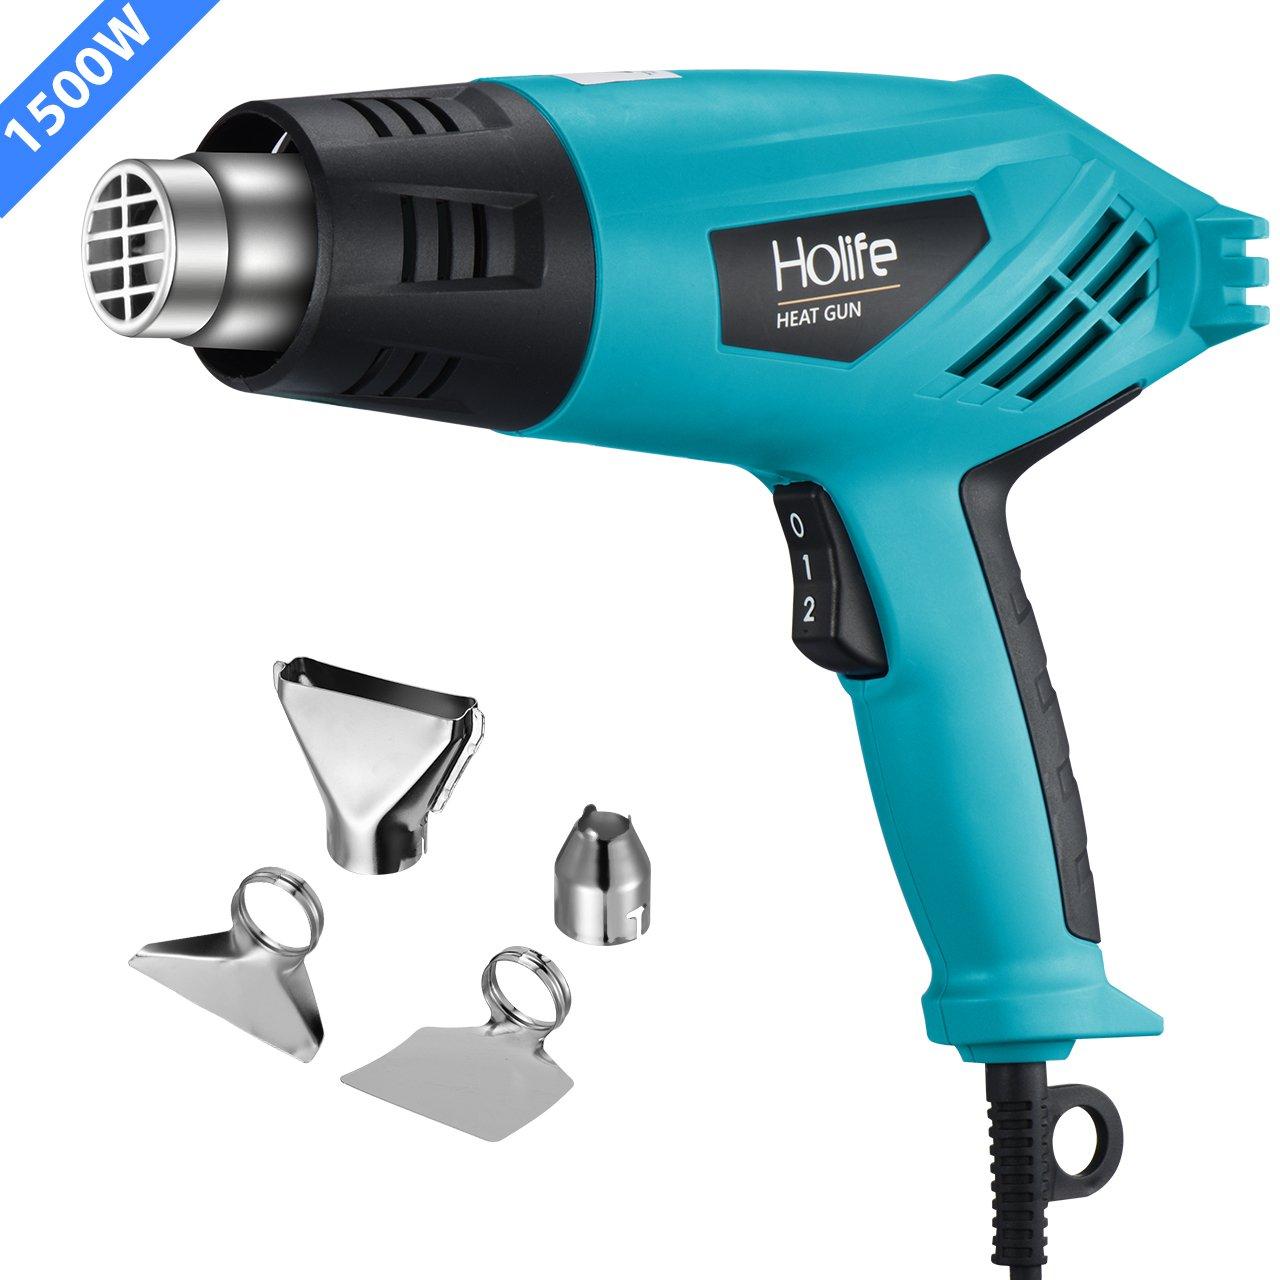 Heat Gun, PICTEK Hot Air Gun Dual Temperature 662℉-1022℉(350℃-550℃) 1500W with Four Nozzle Attachments, Over-Load Protection for Crafts, Shrink Wrapping, Removing Paint DS040